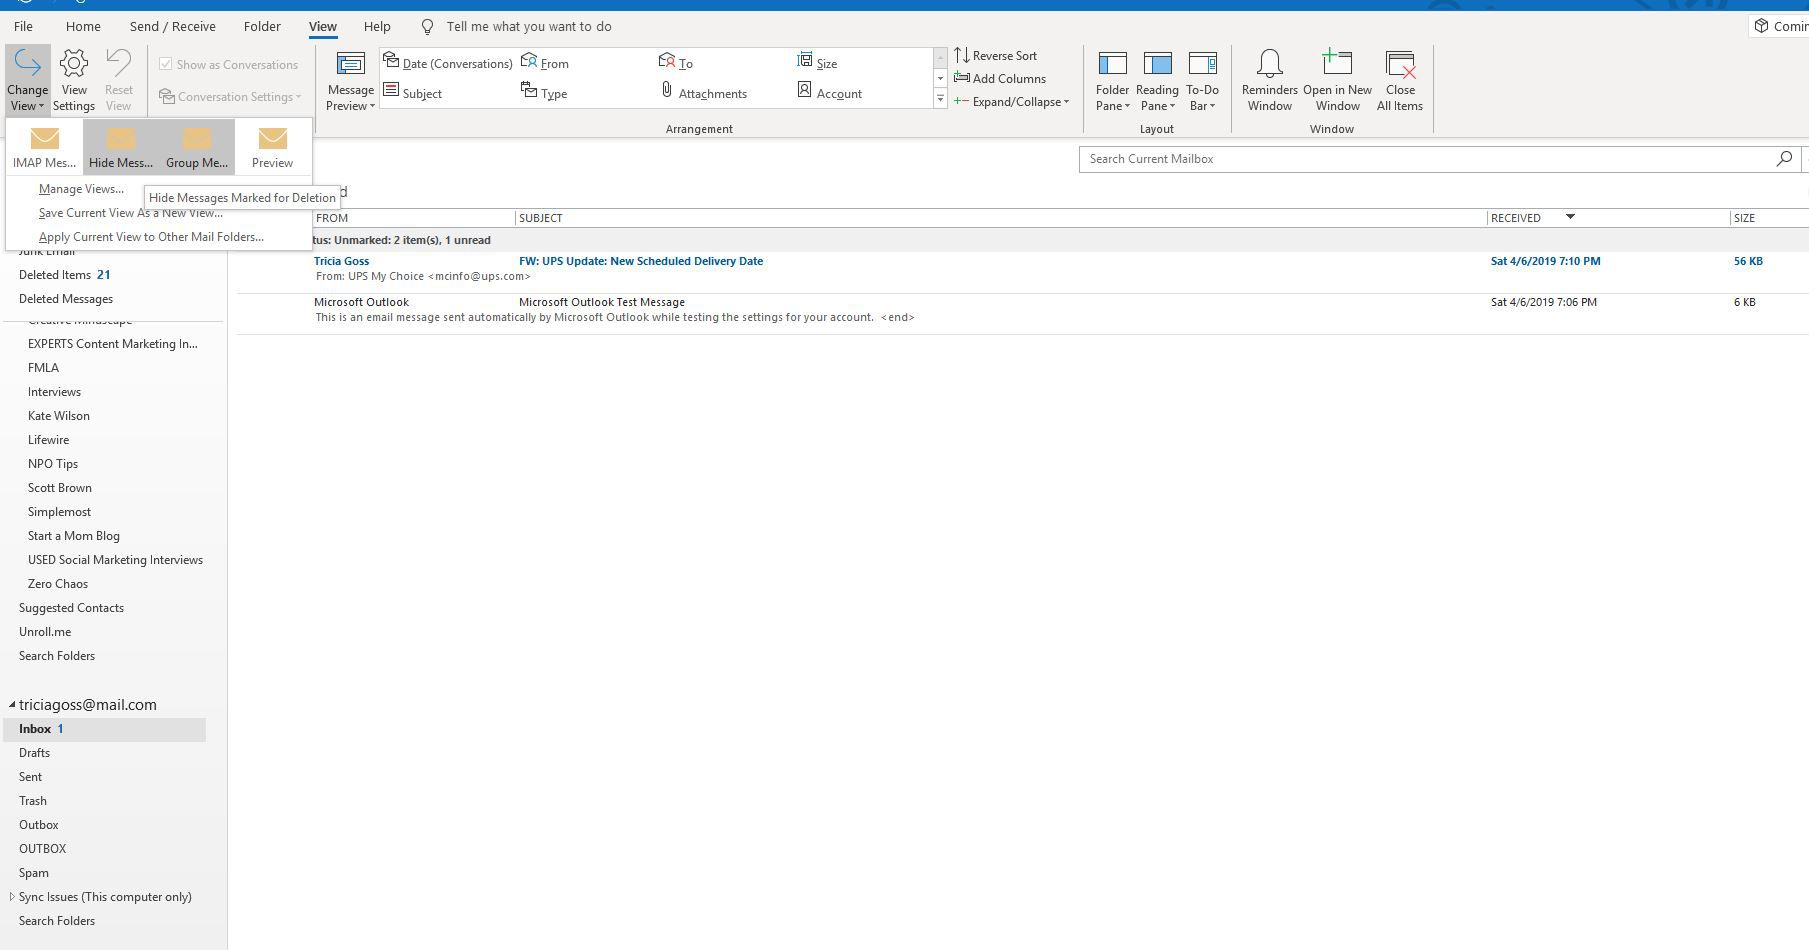 Hide Messages selection on Outlook